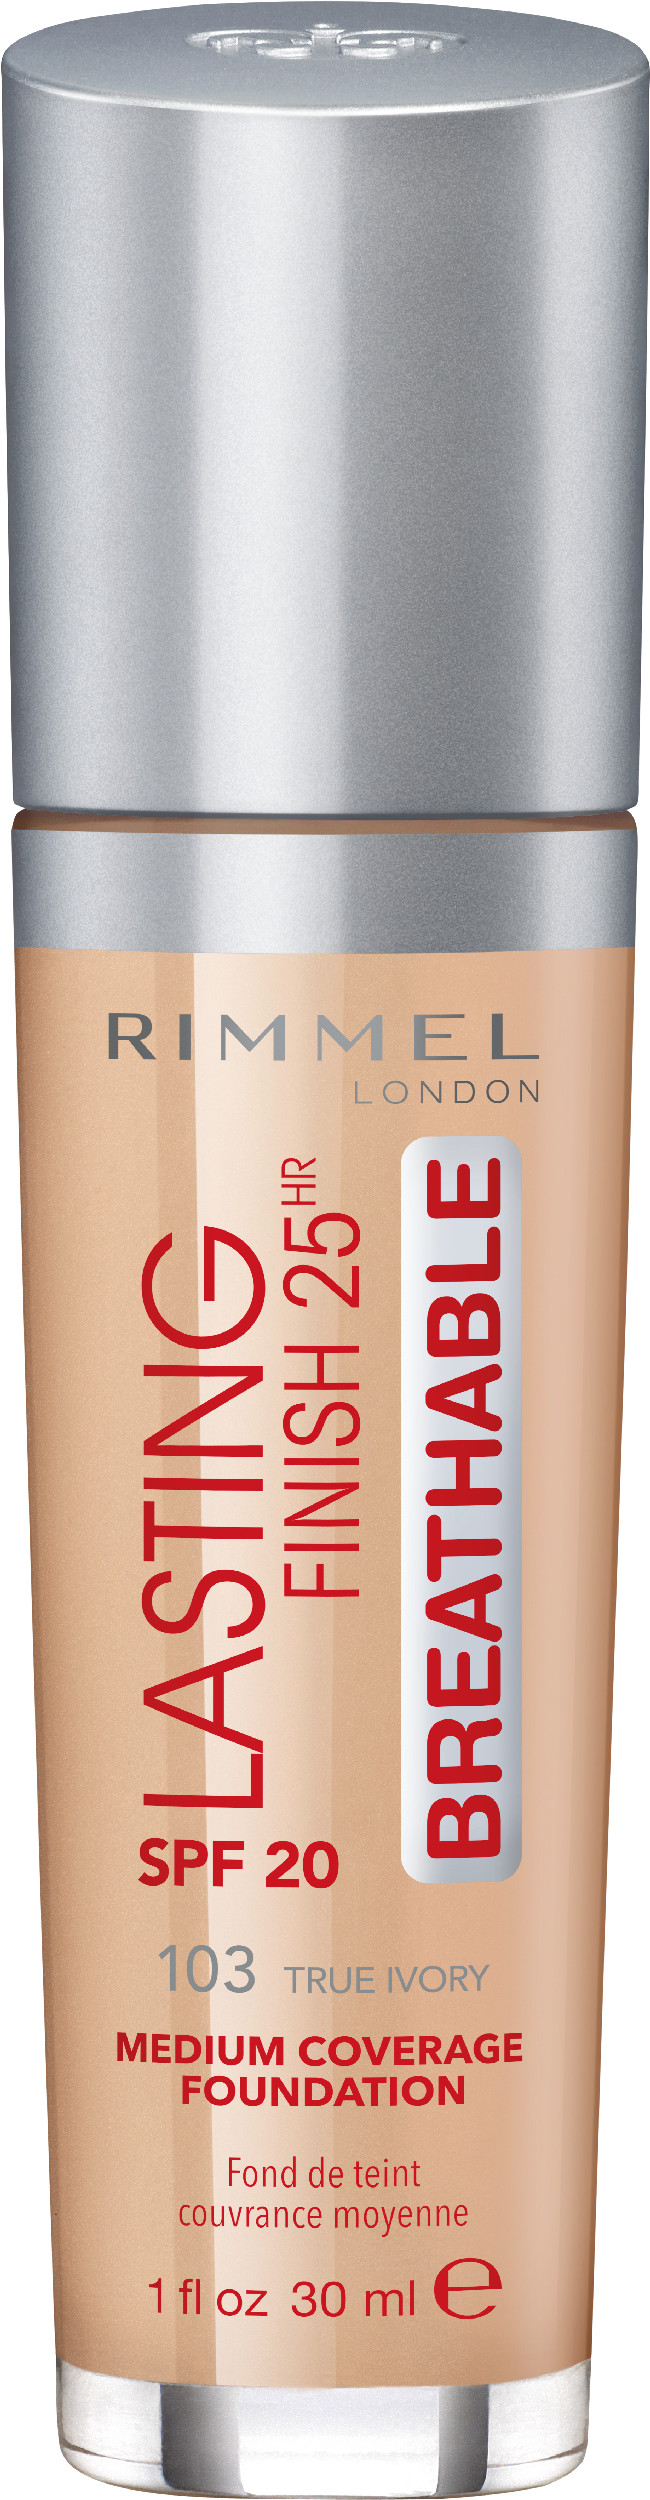 Rimmel Lasting Finish Breathable Podkład do Twarzy 103 True Ivory RIM-2699